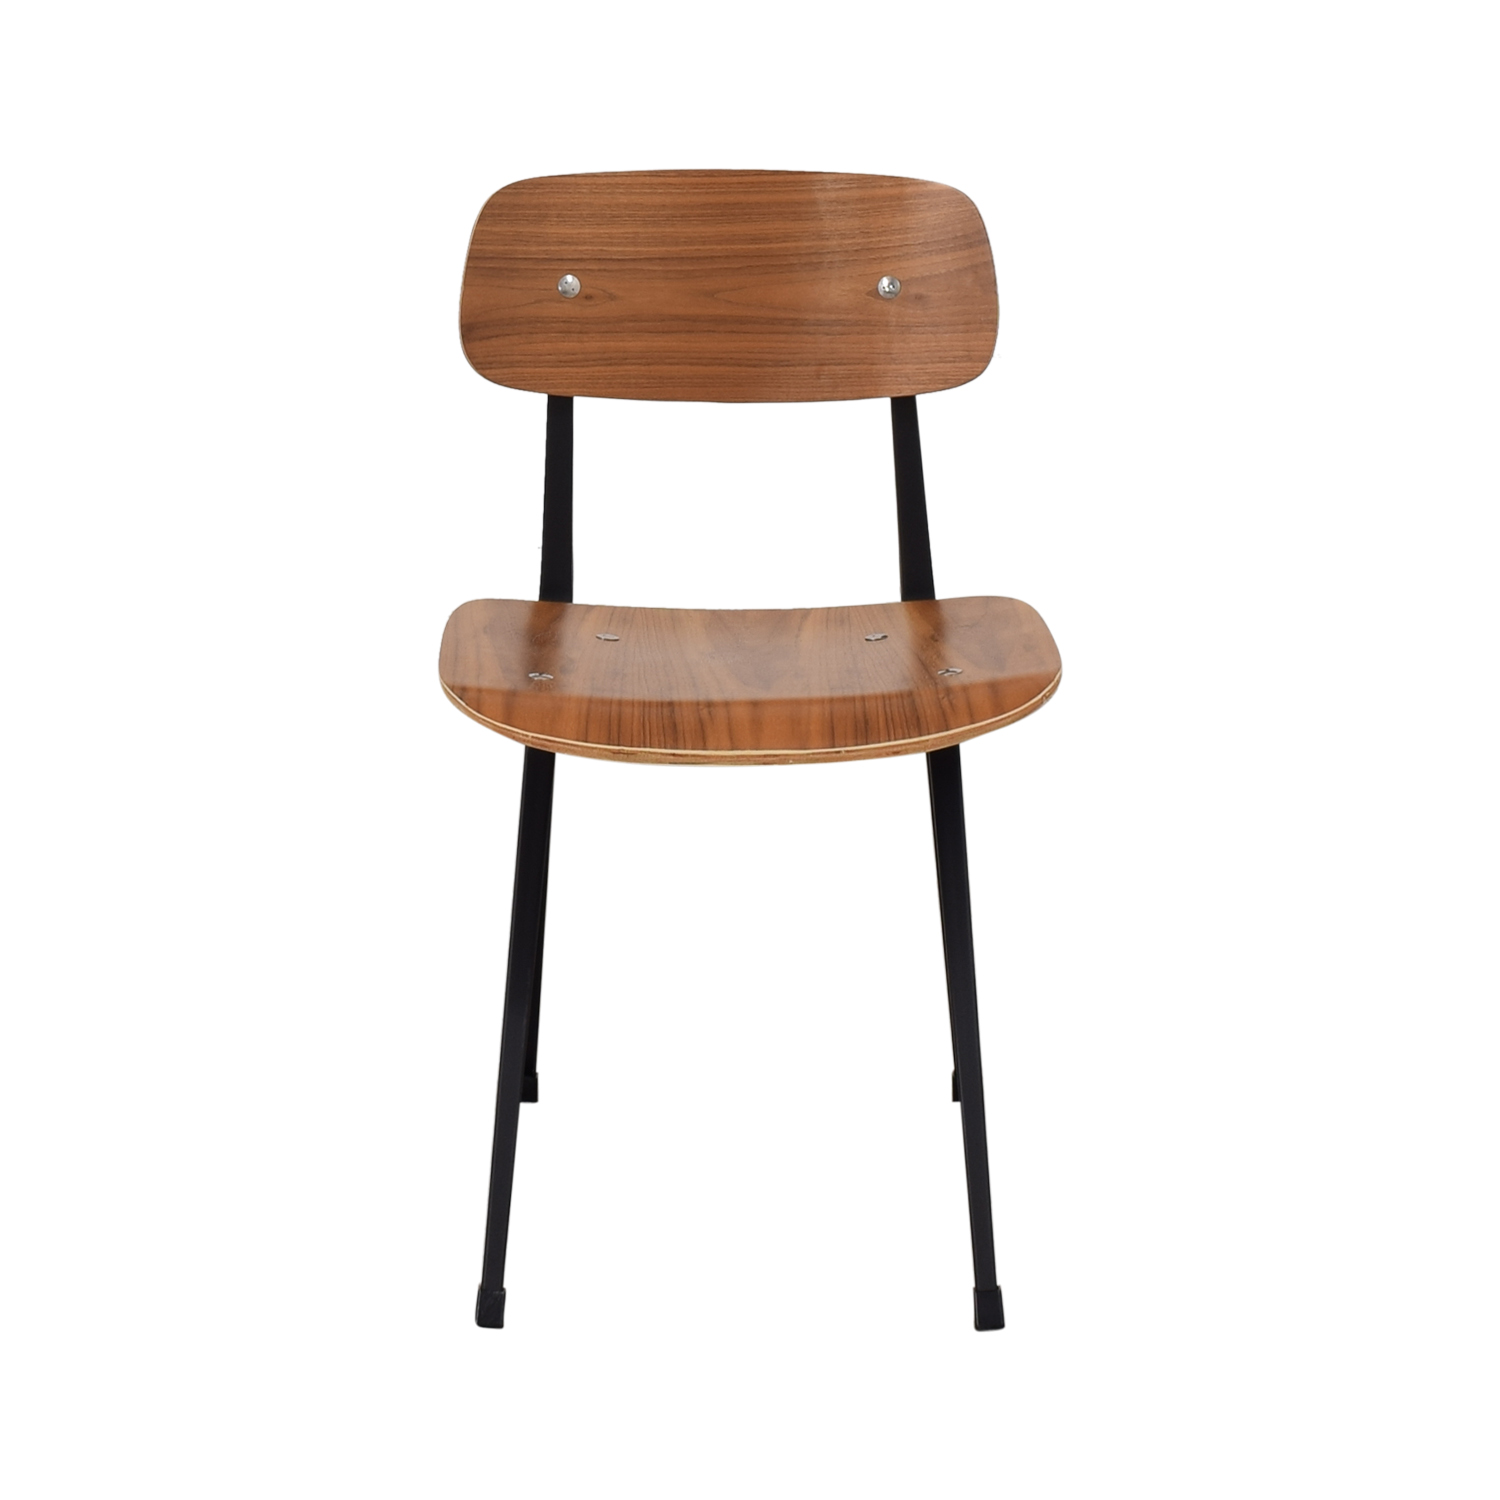 Organic Modernism Organic Modernism Cafe Walnut Dining Chair nj